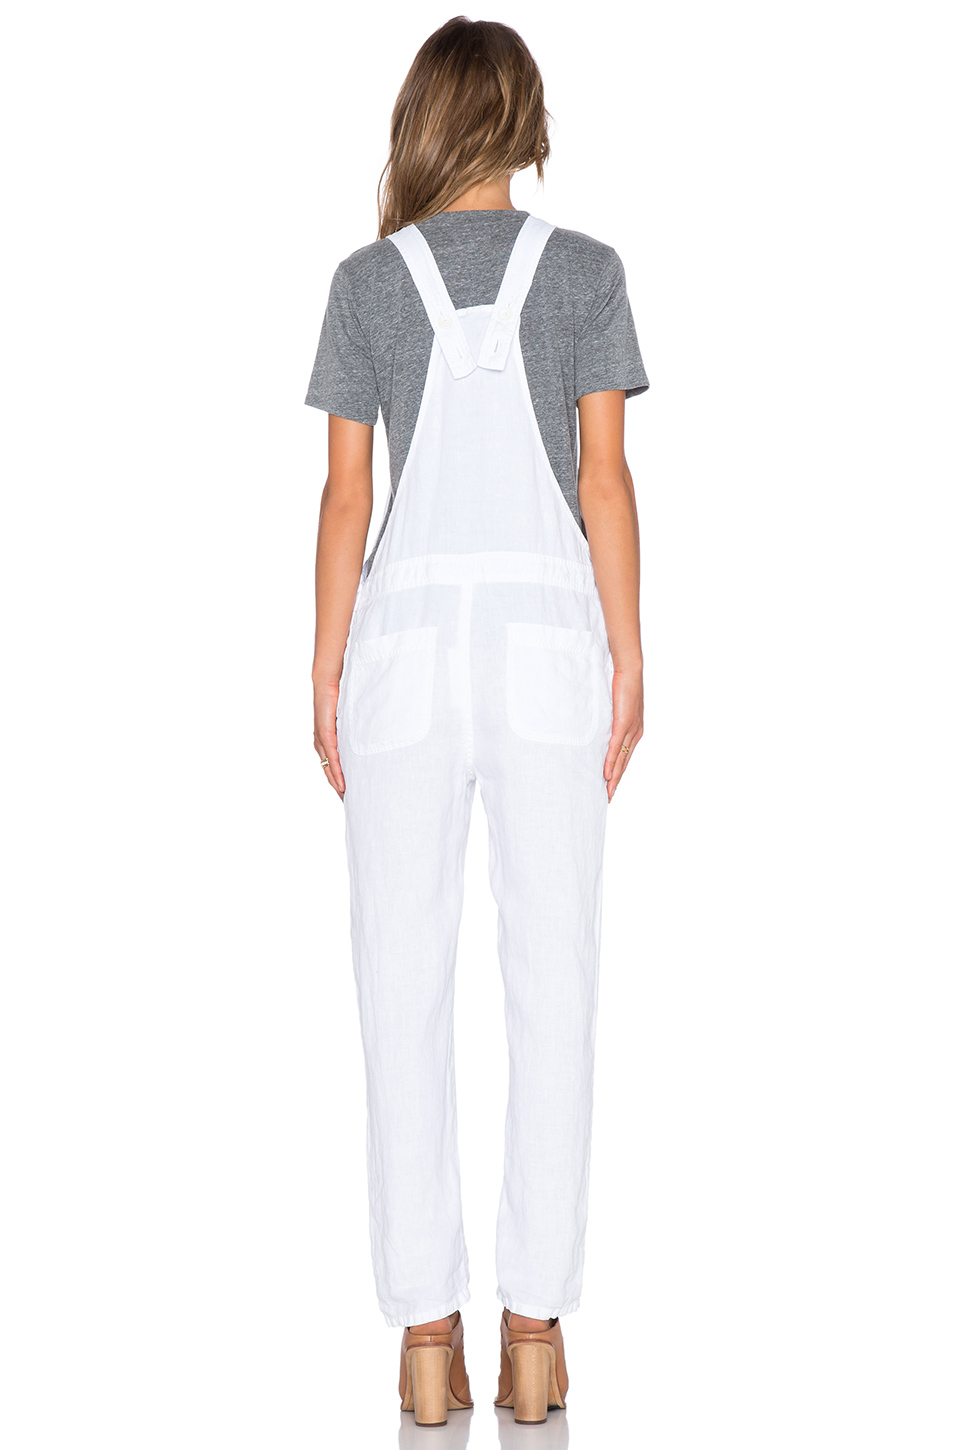 91f7660a8b Lyst - James Perse Linen Overalls in White